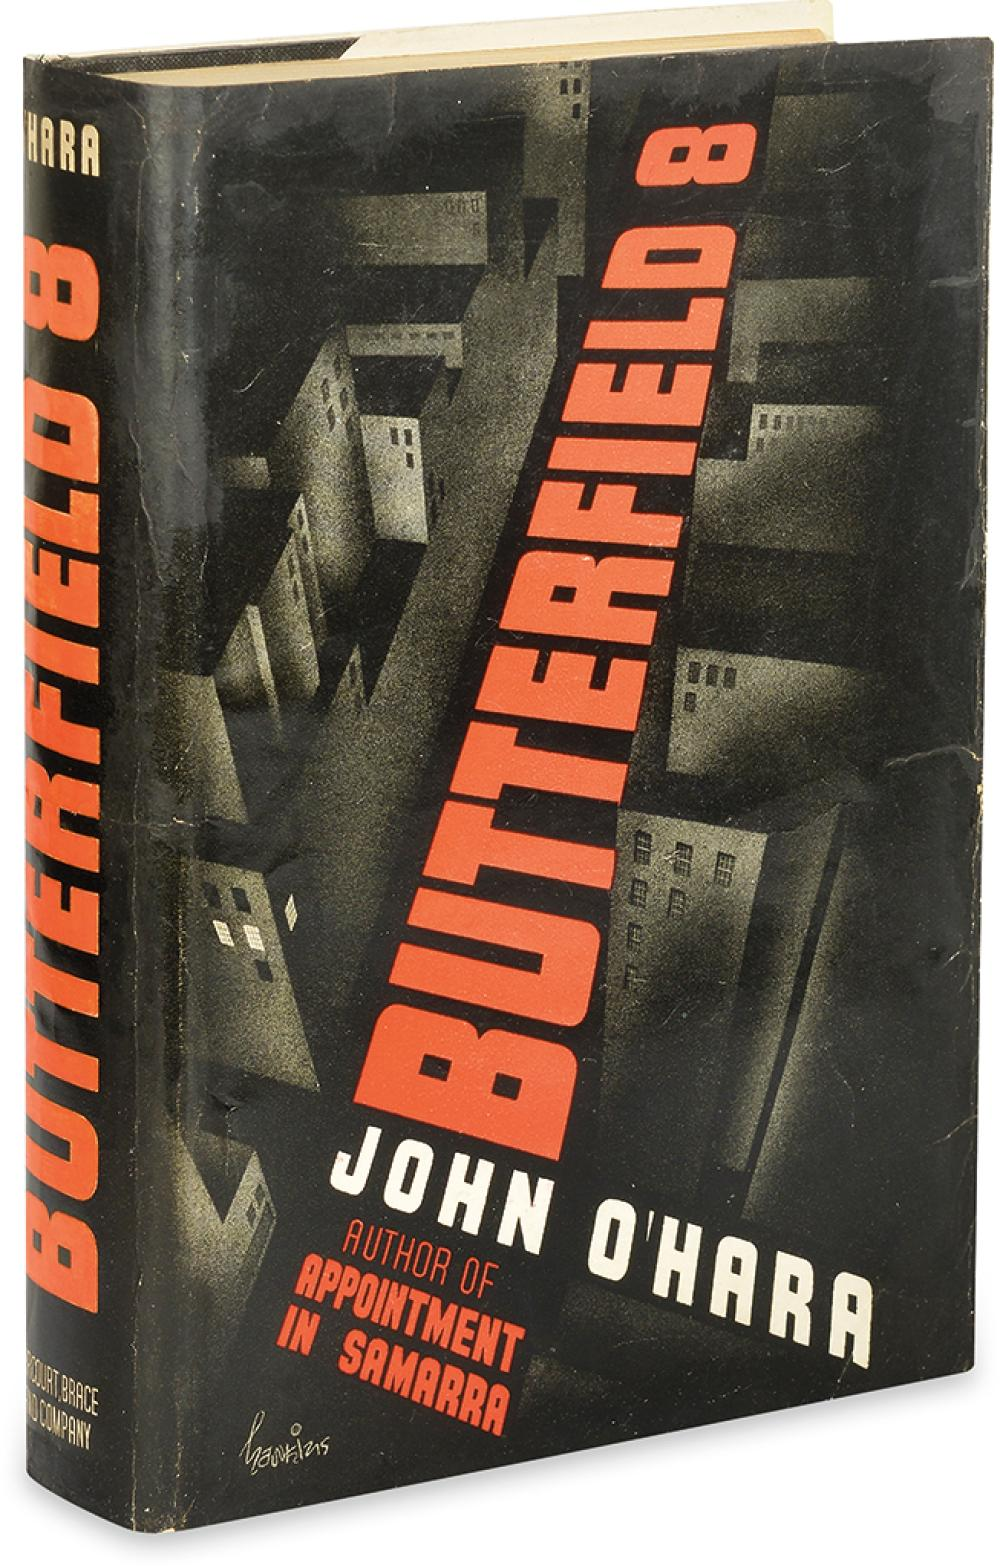 O'HARA, JOHN. Butterfield 8.